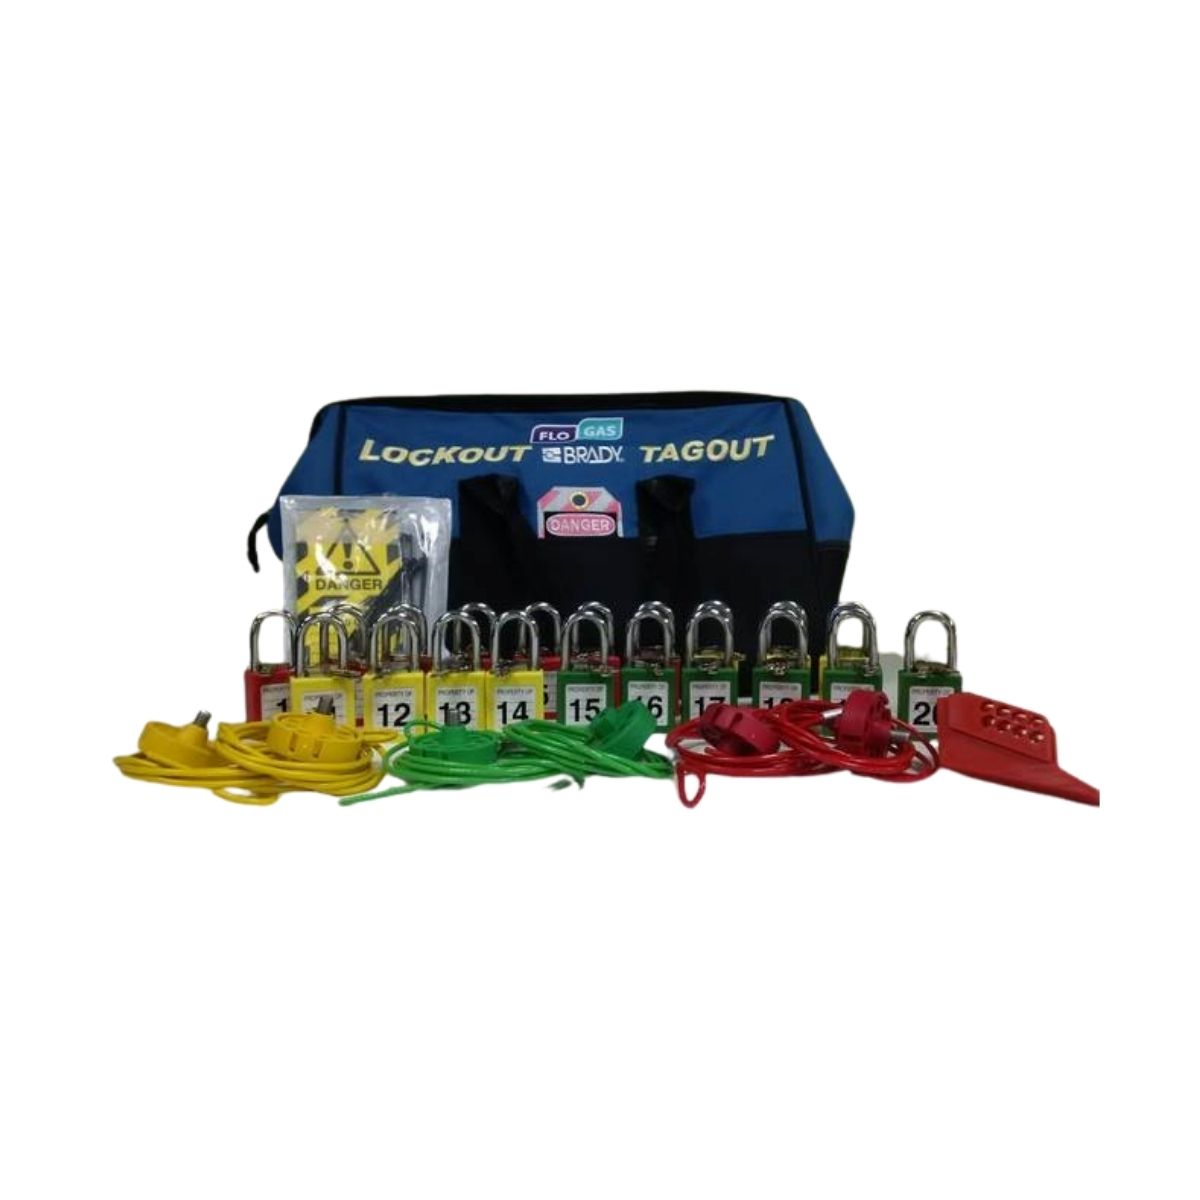 WH6625 Large Lockout Kit